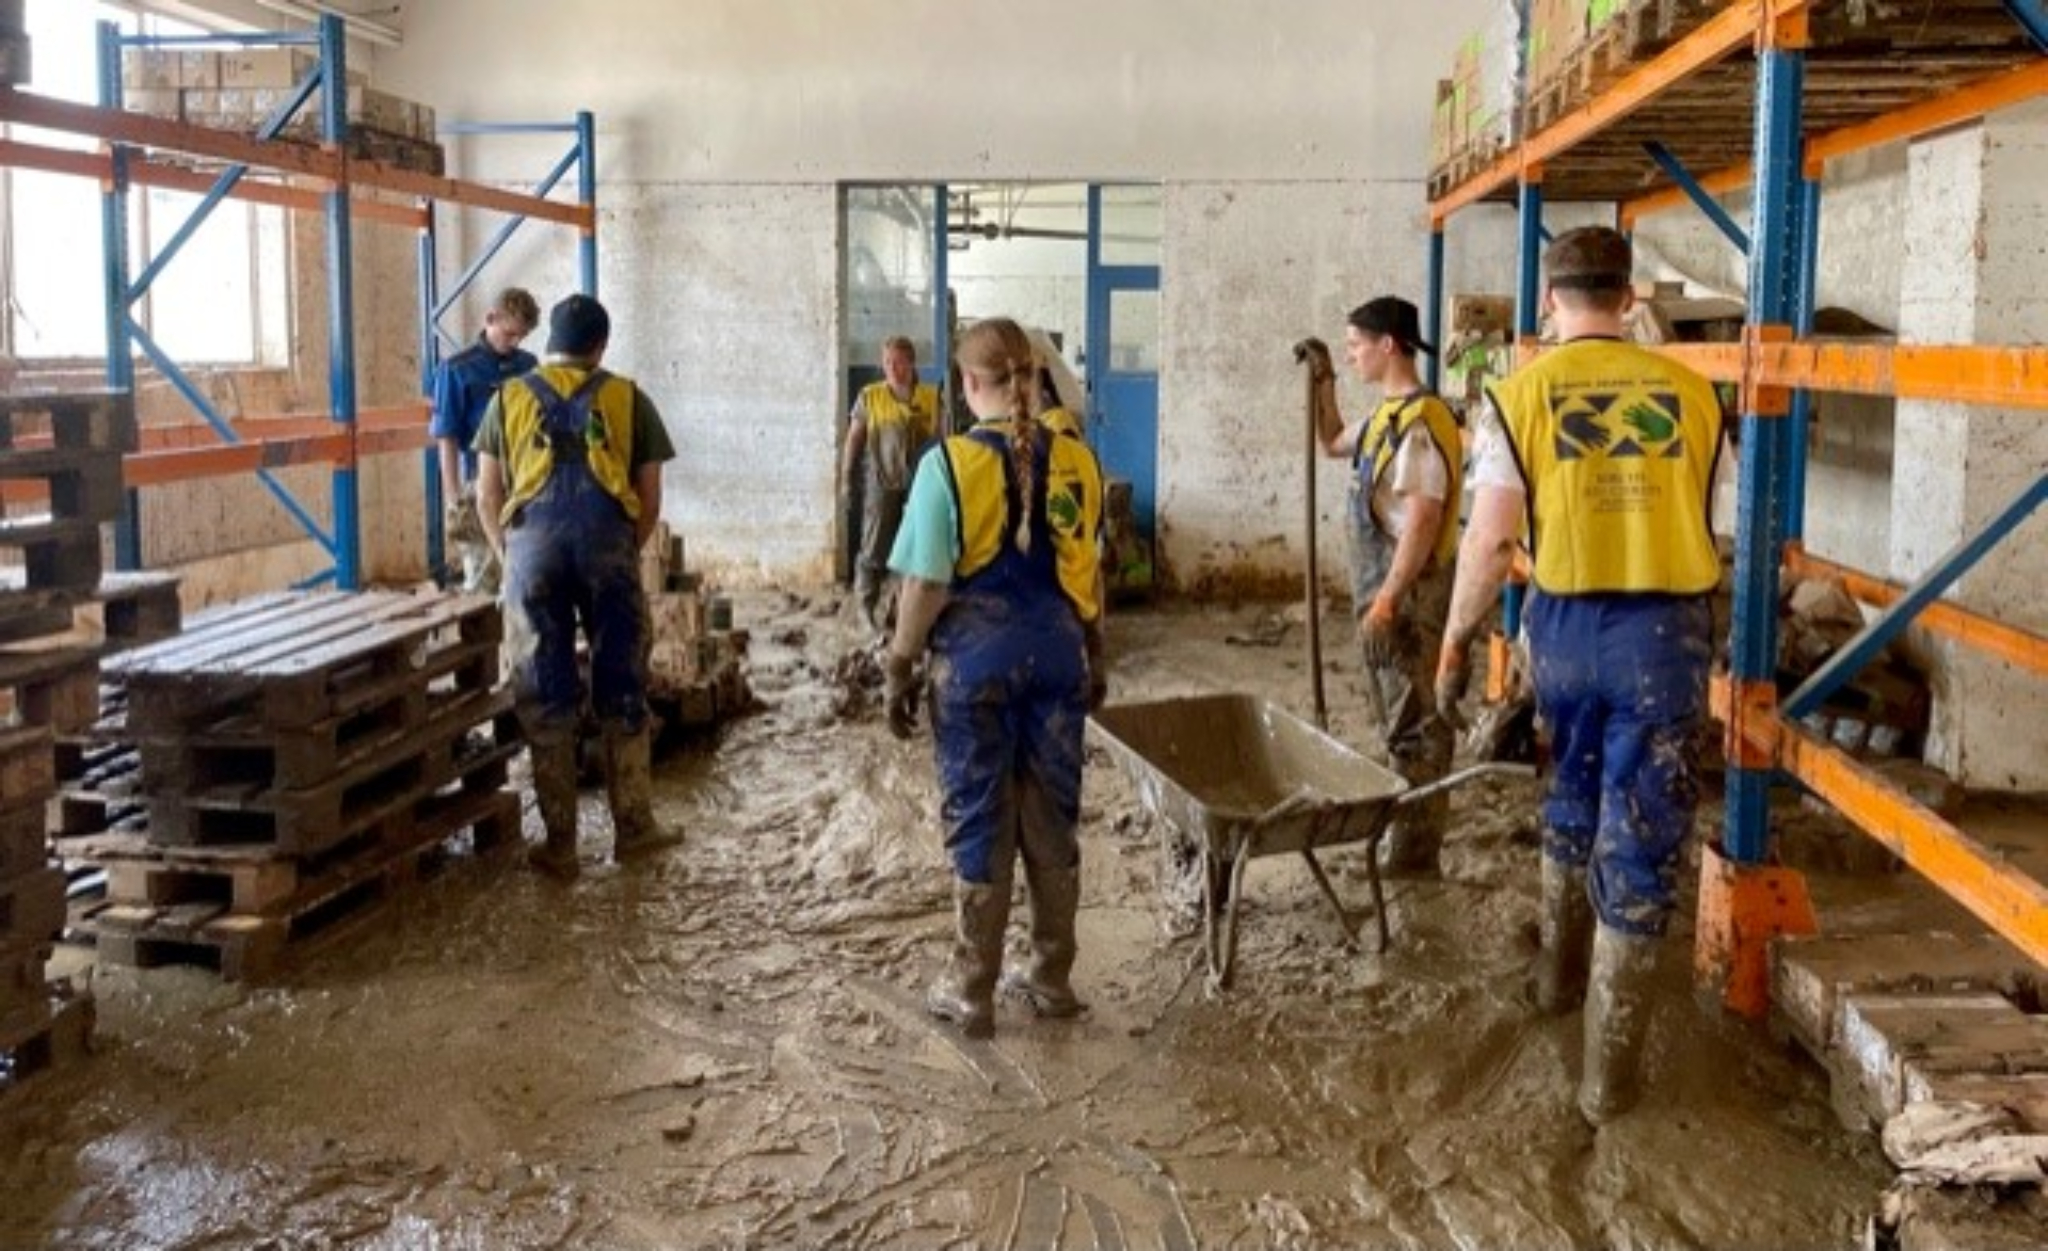 Latter-day Saint volunteers clean up and help those affected by flooding in Germany.